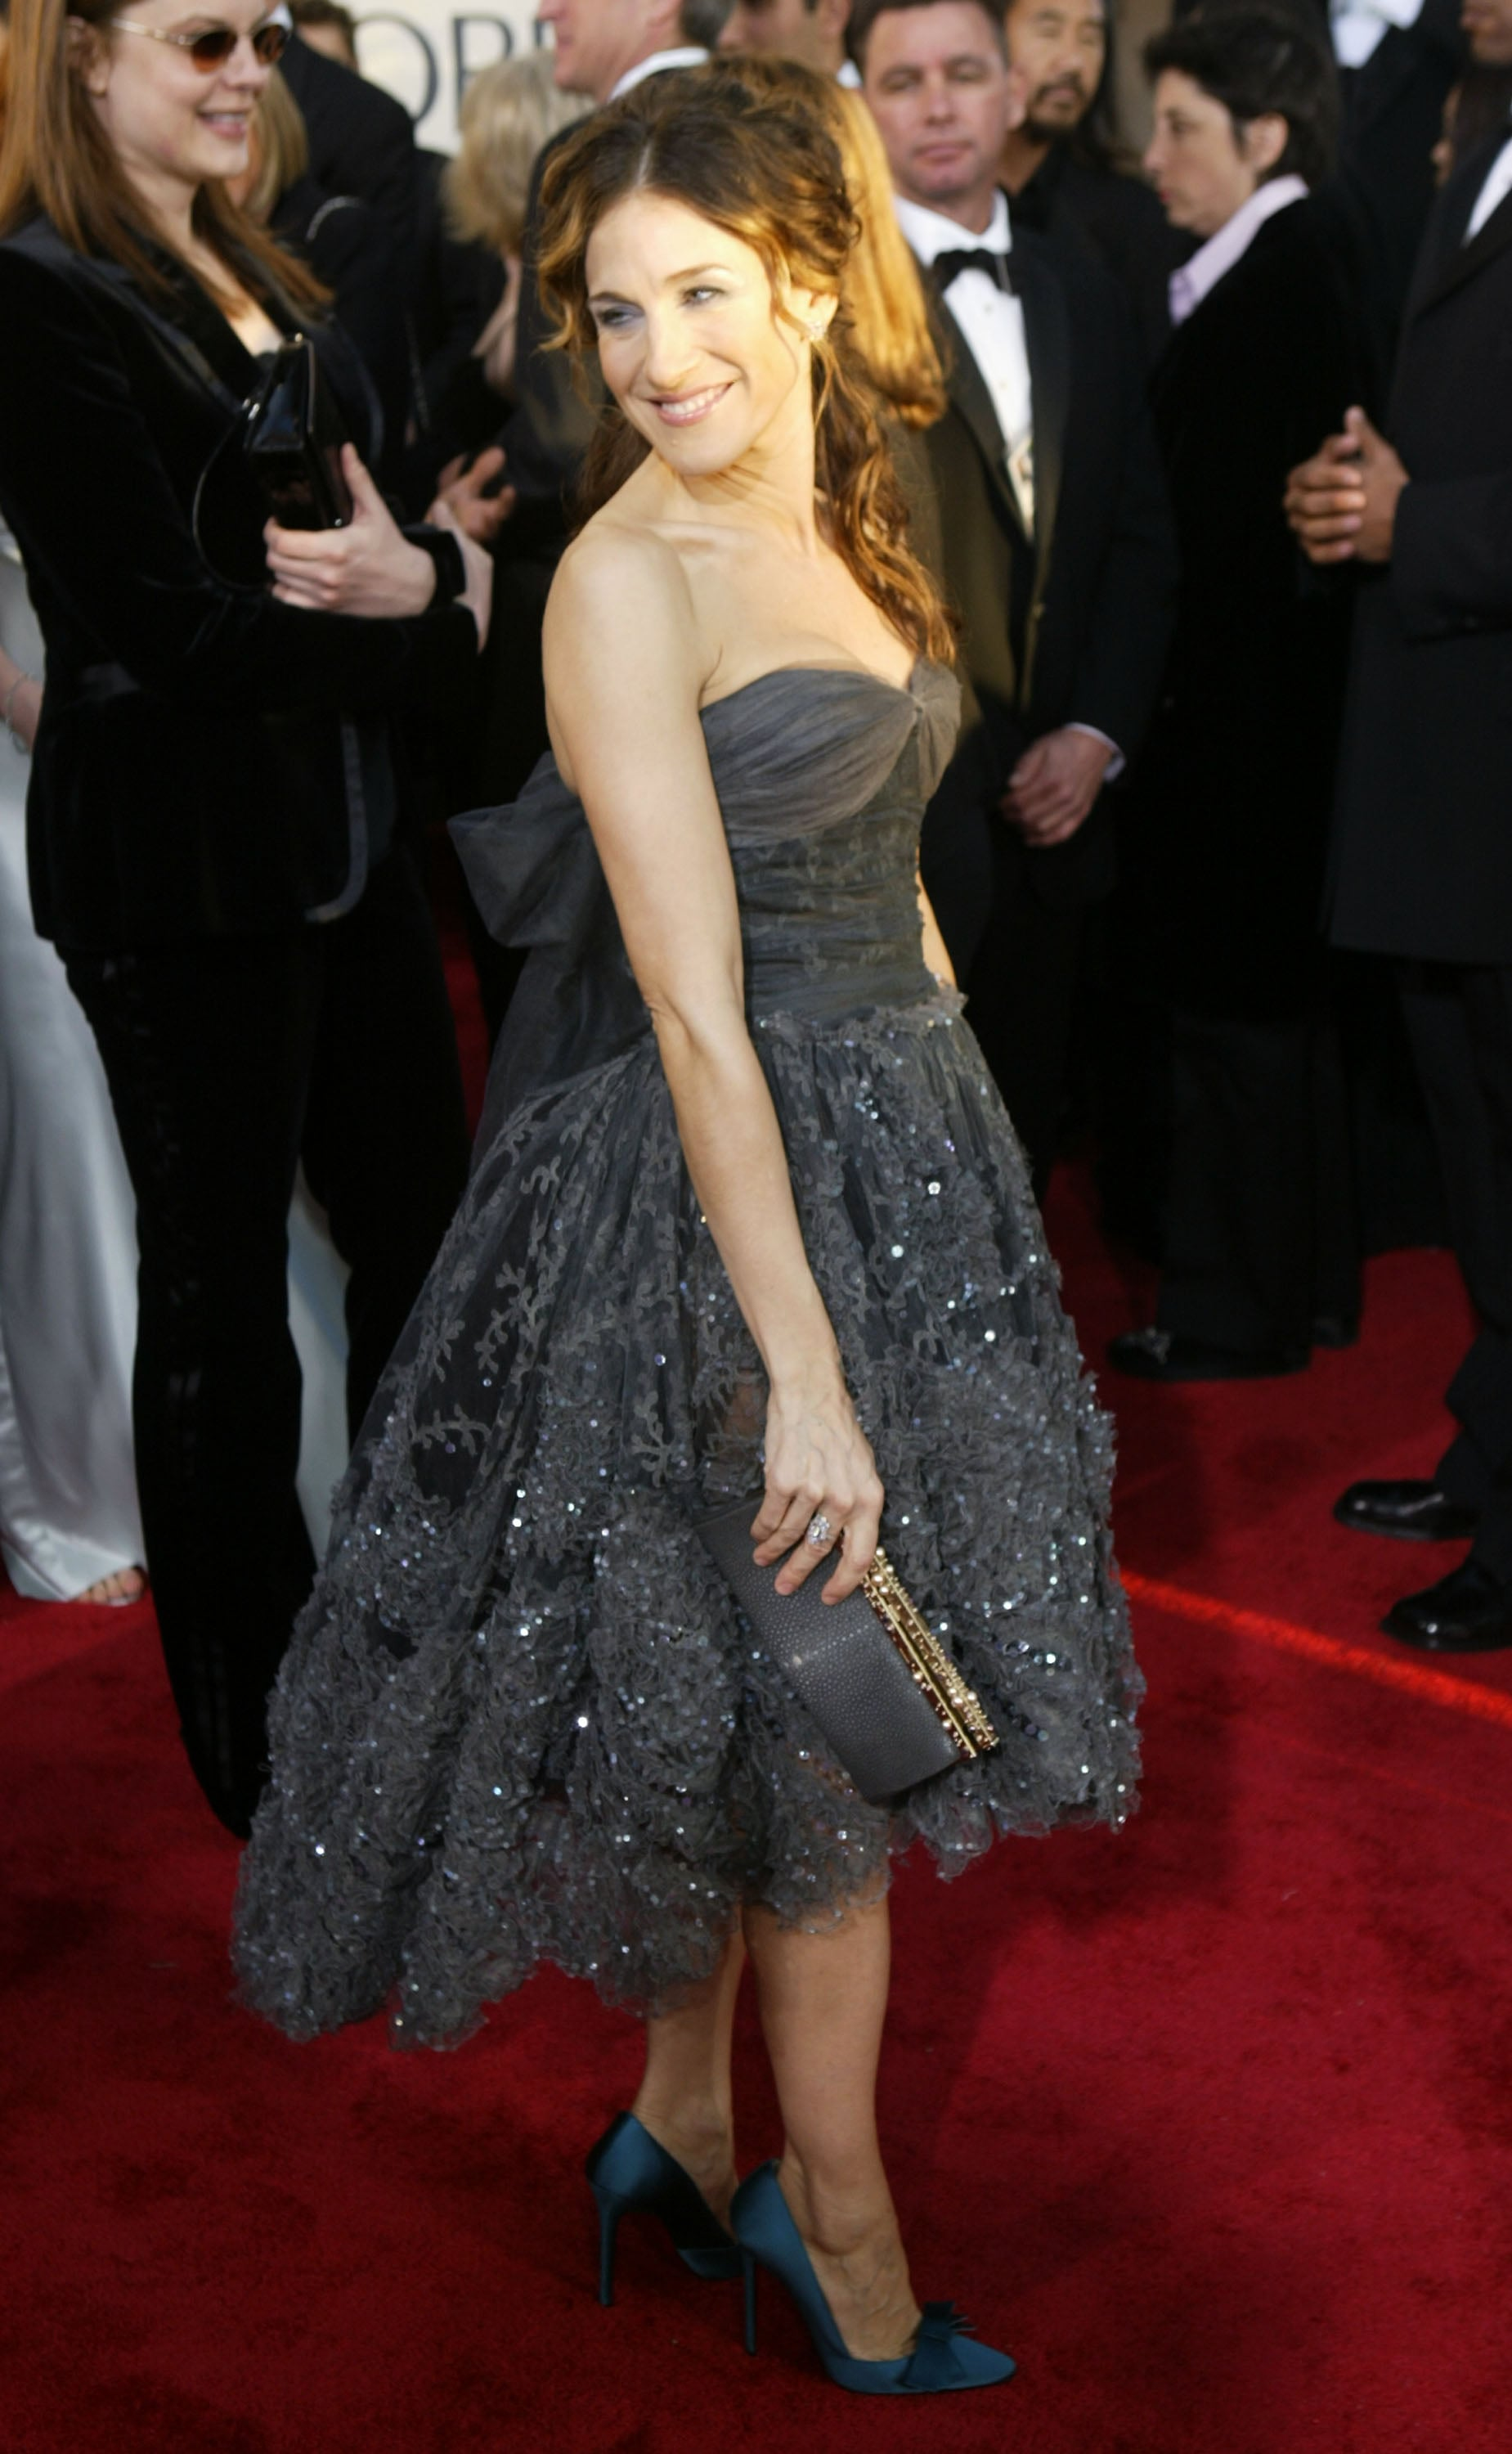 Sarah Jessica Parker in 2004.